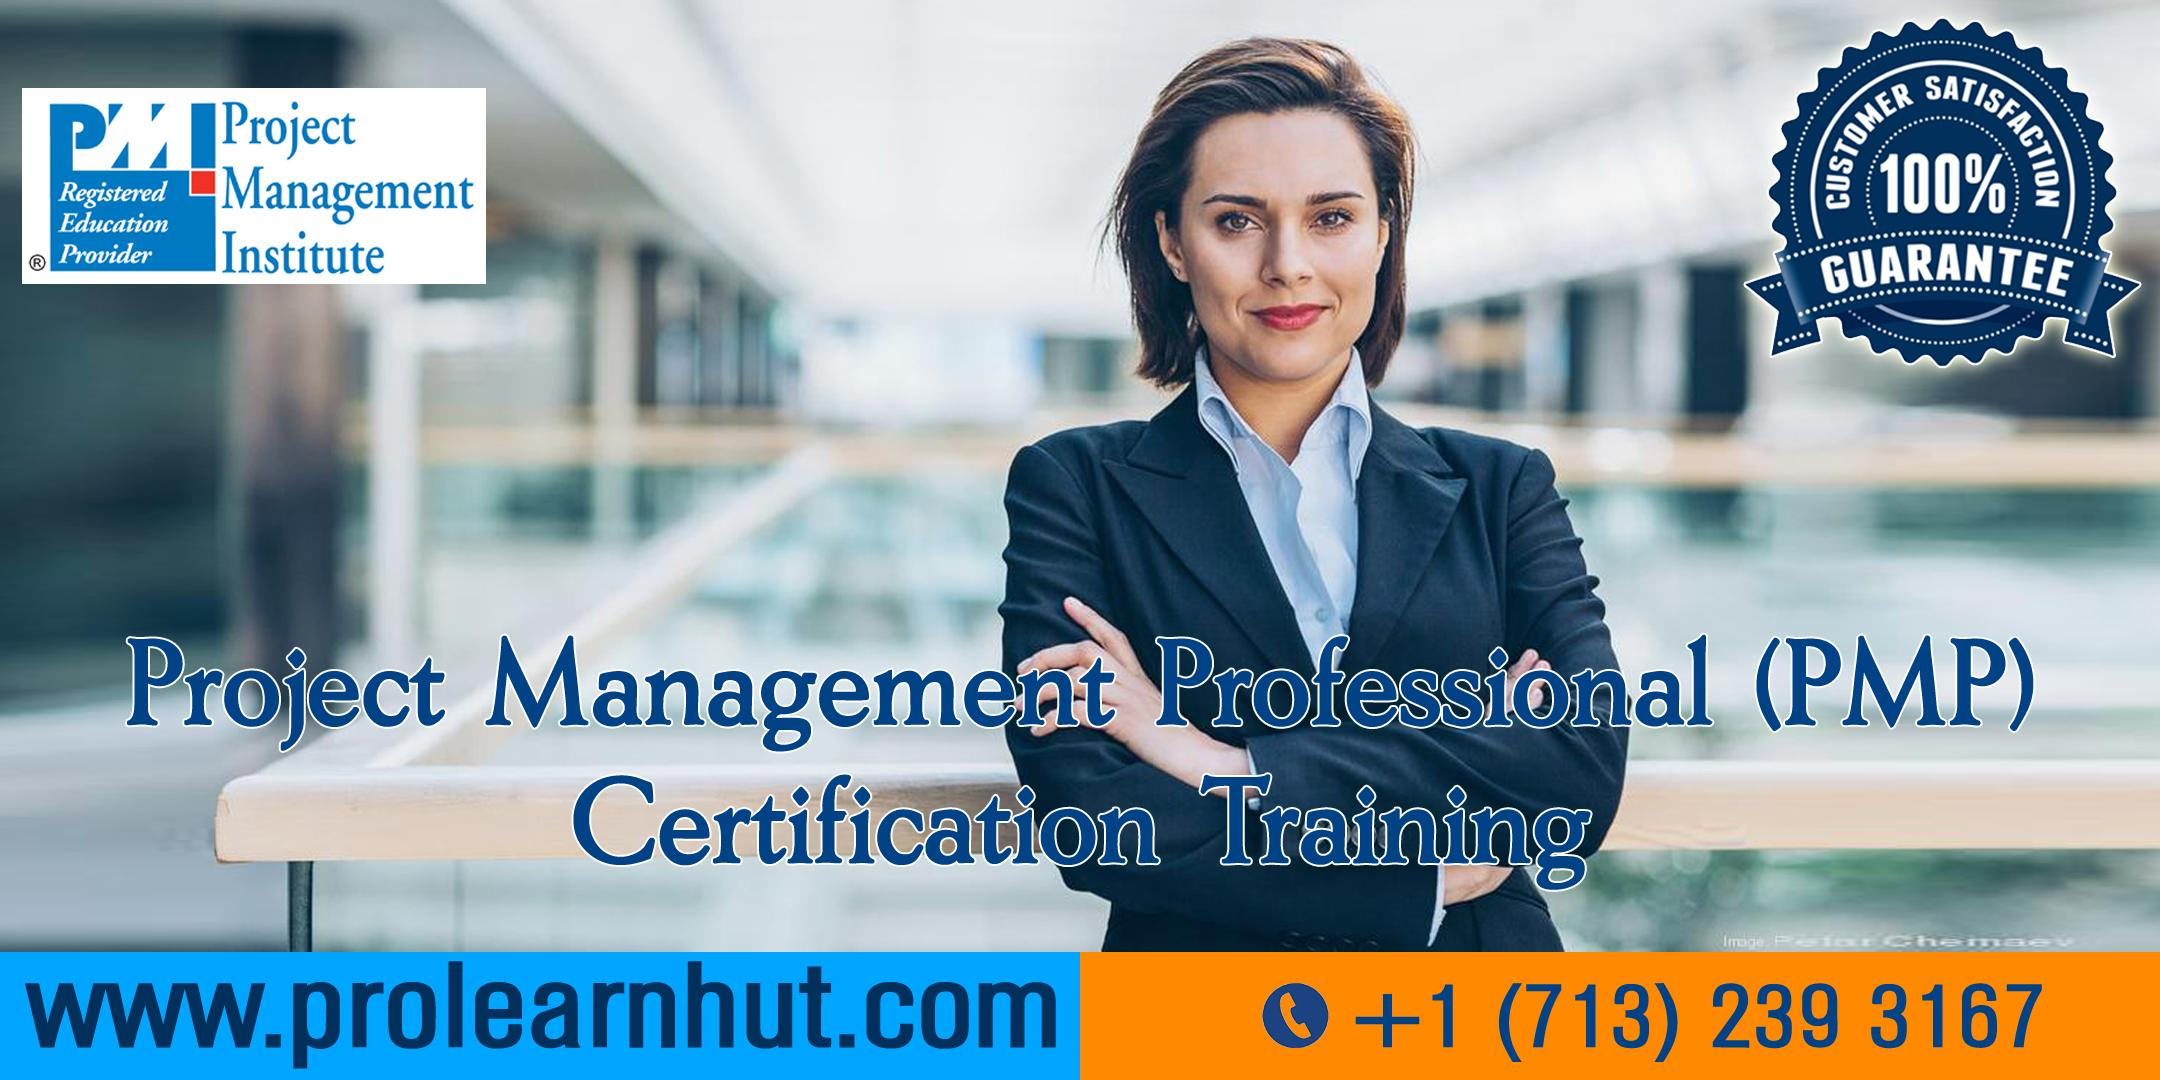 PMP Certification | Project Management Certification| PMP Training in Jersey City, NJ | ProLearnHut